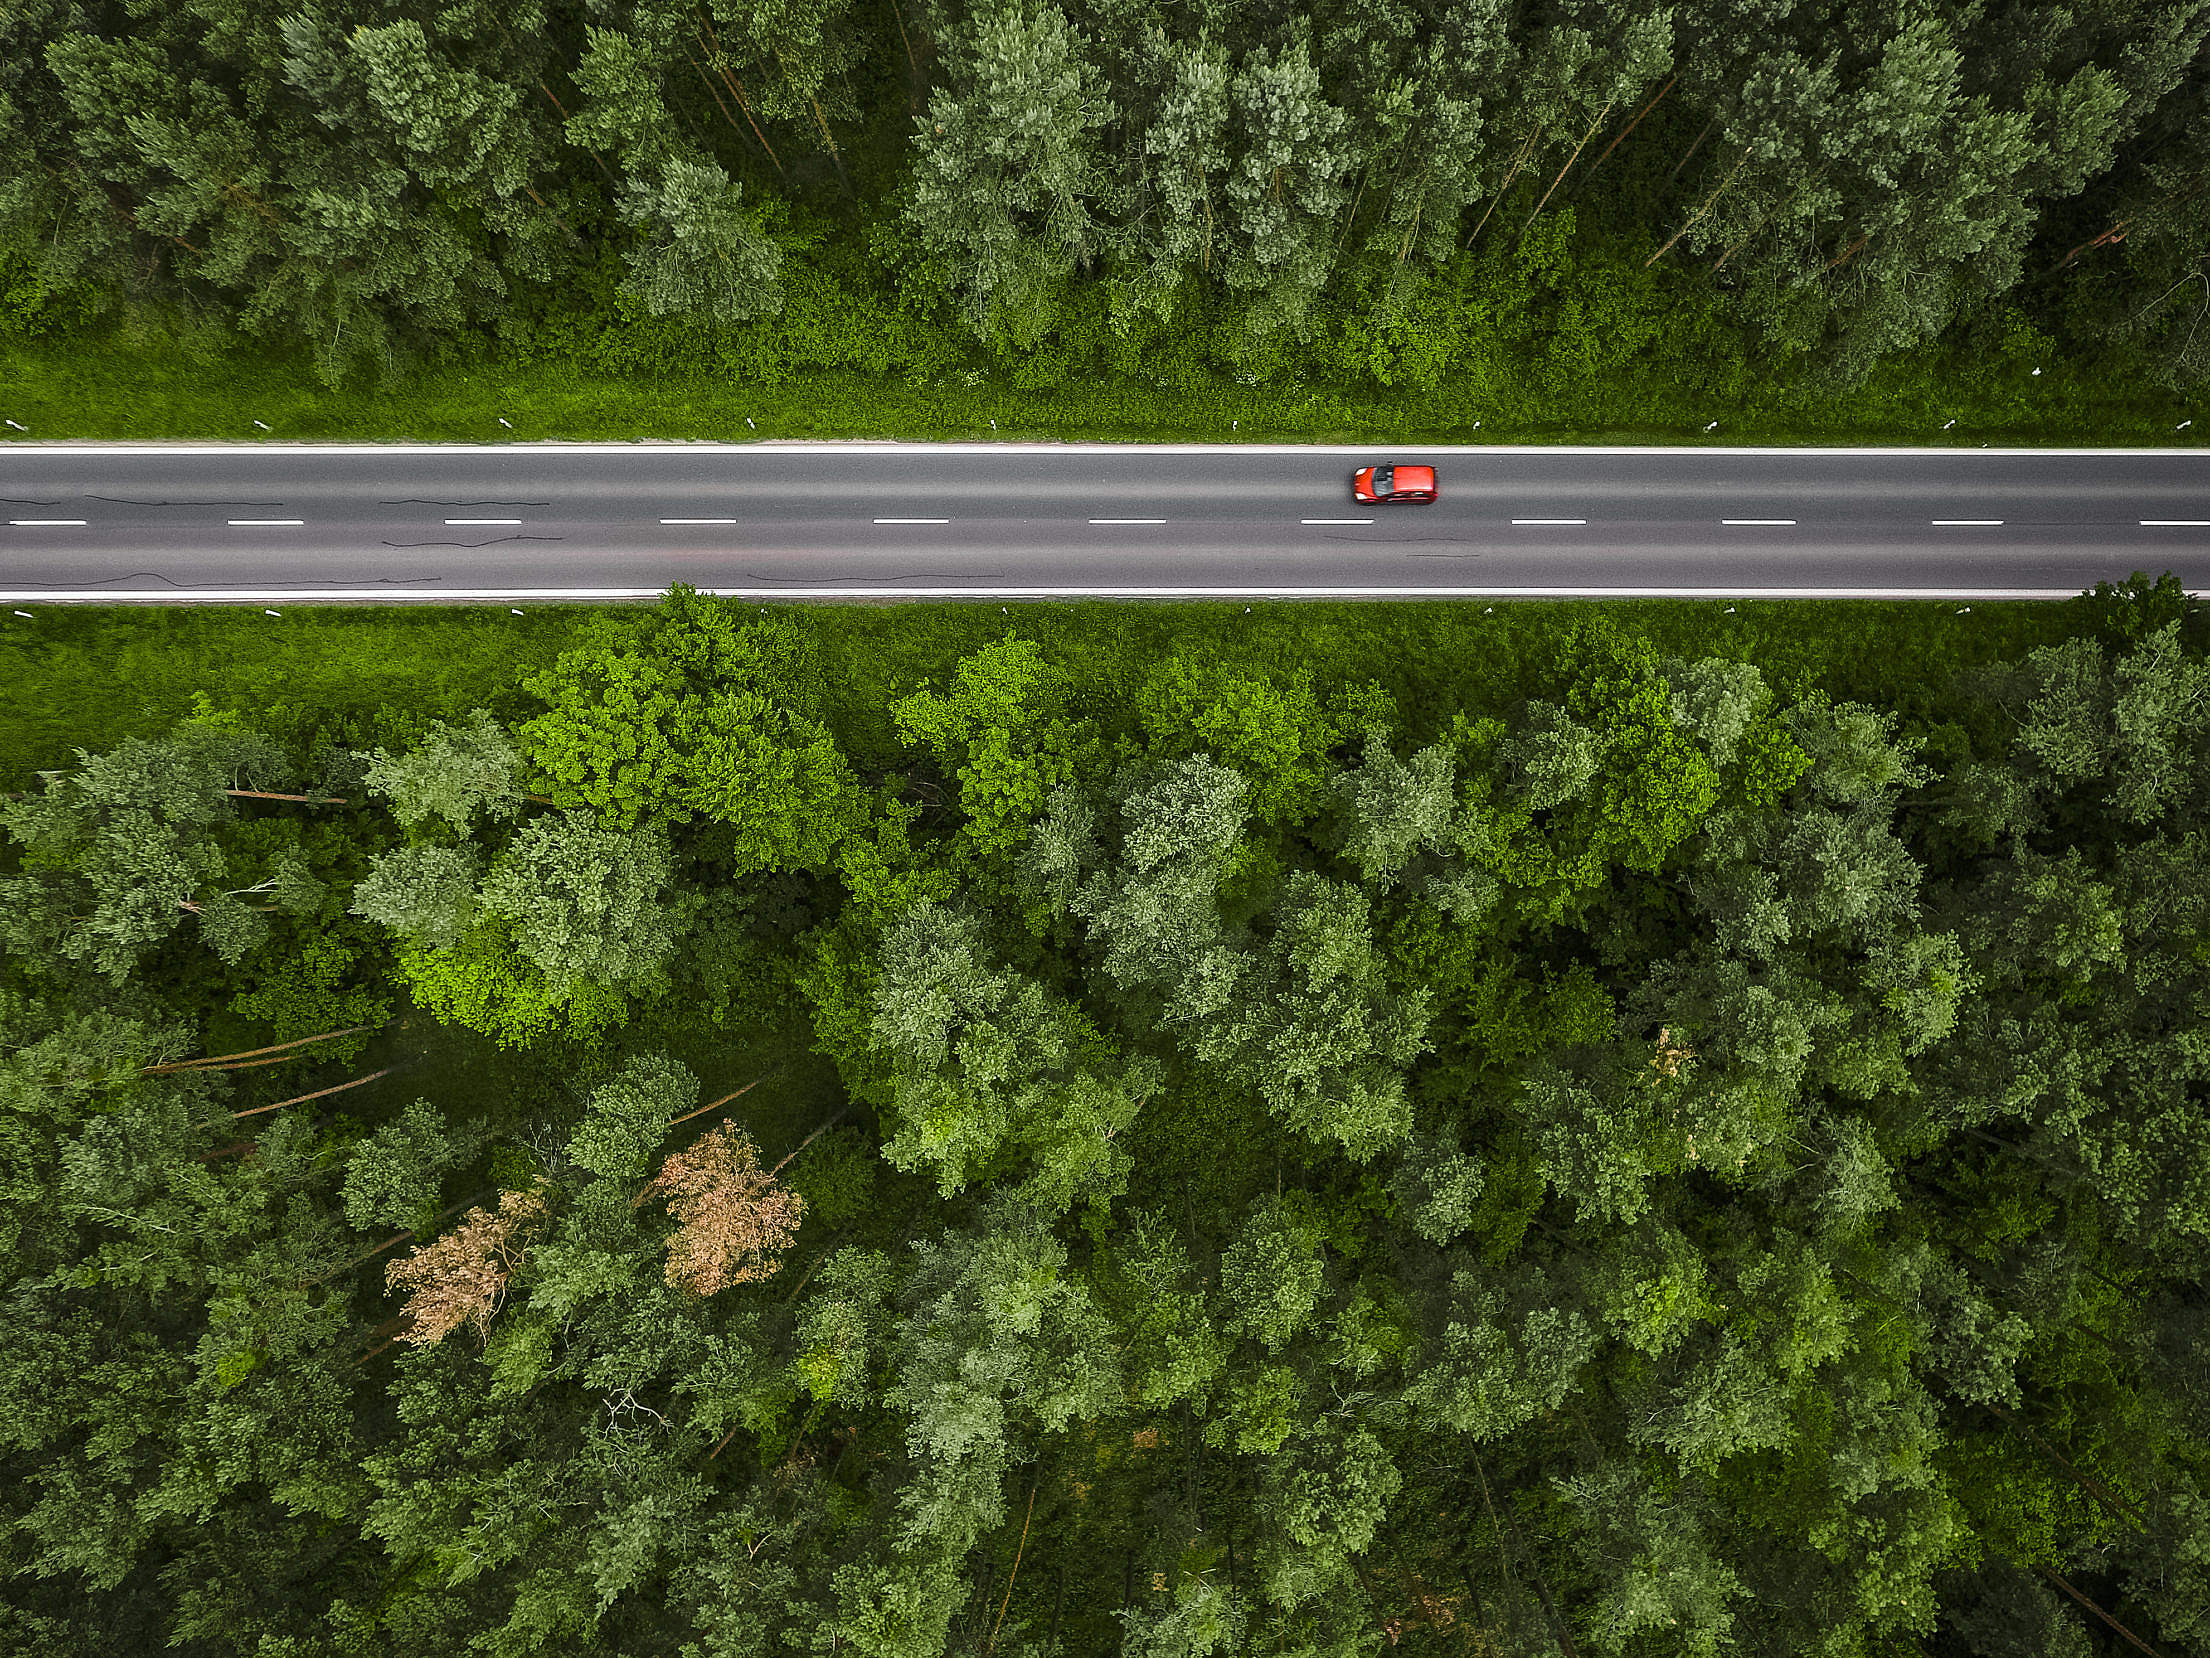 Aerial and Symmetric View of a Road in the Woods Free Stock Photo